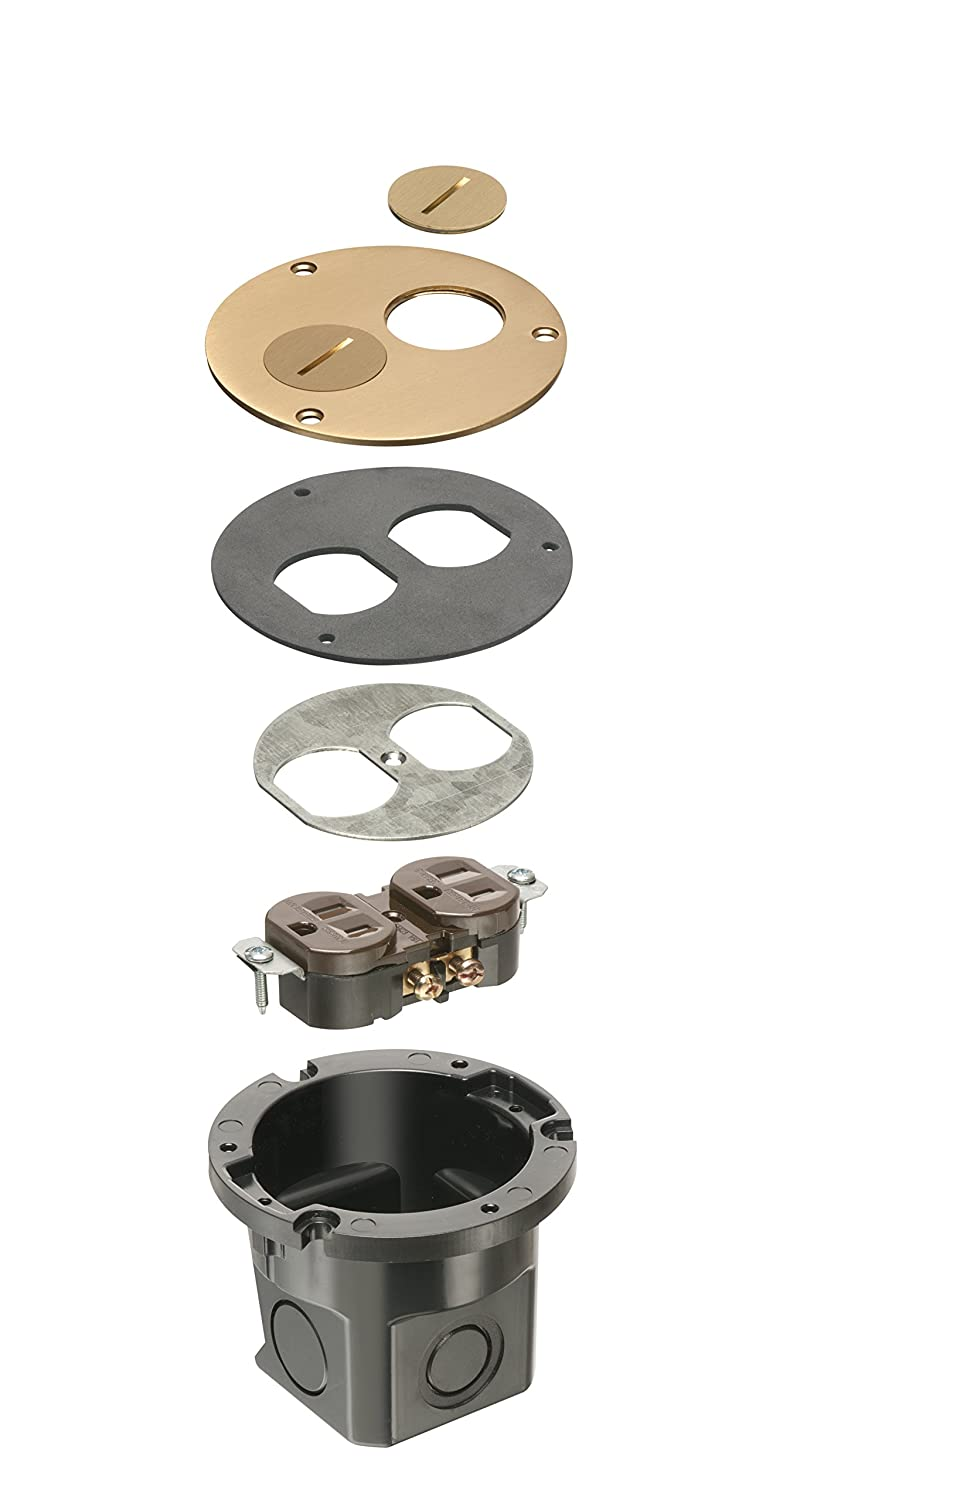 for Installed Floors Metallic Brass 1-Gang Arlington Industries Arlington FLB3520MB-1 Round Cut Box Kit Cover and Threaded Plugs 1-Pack